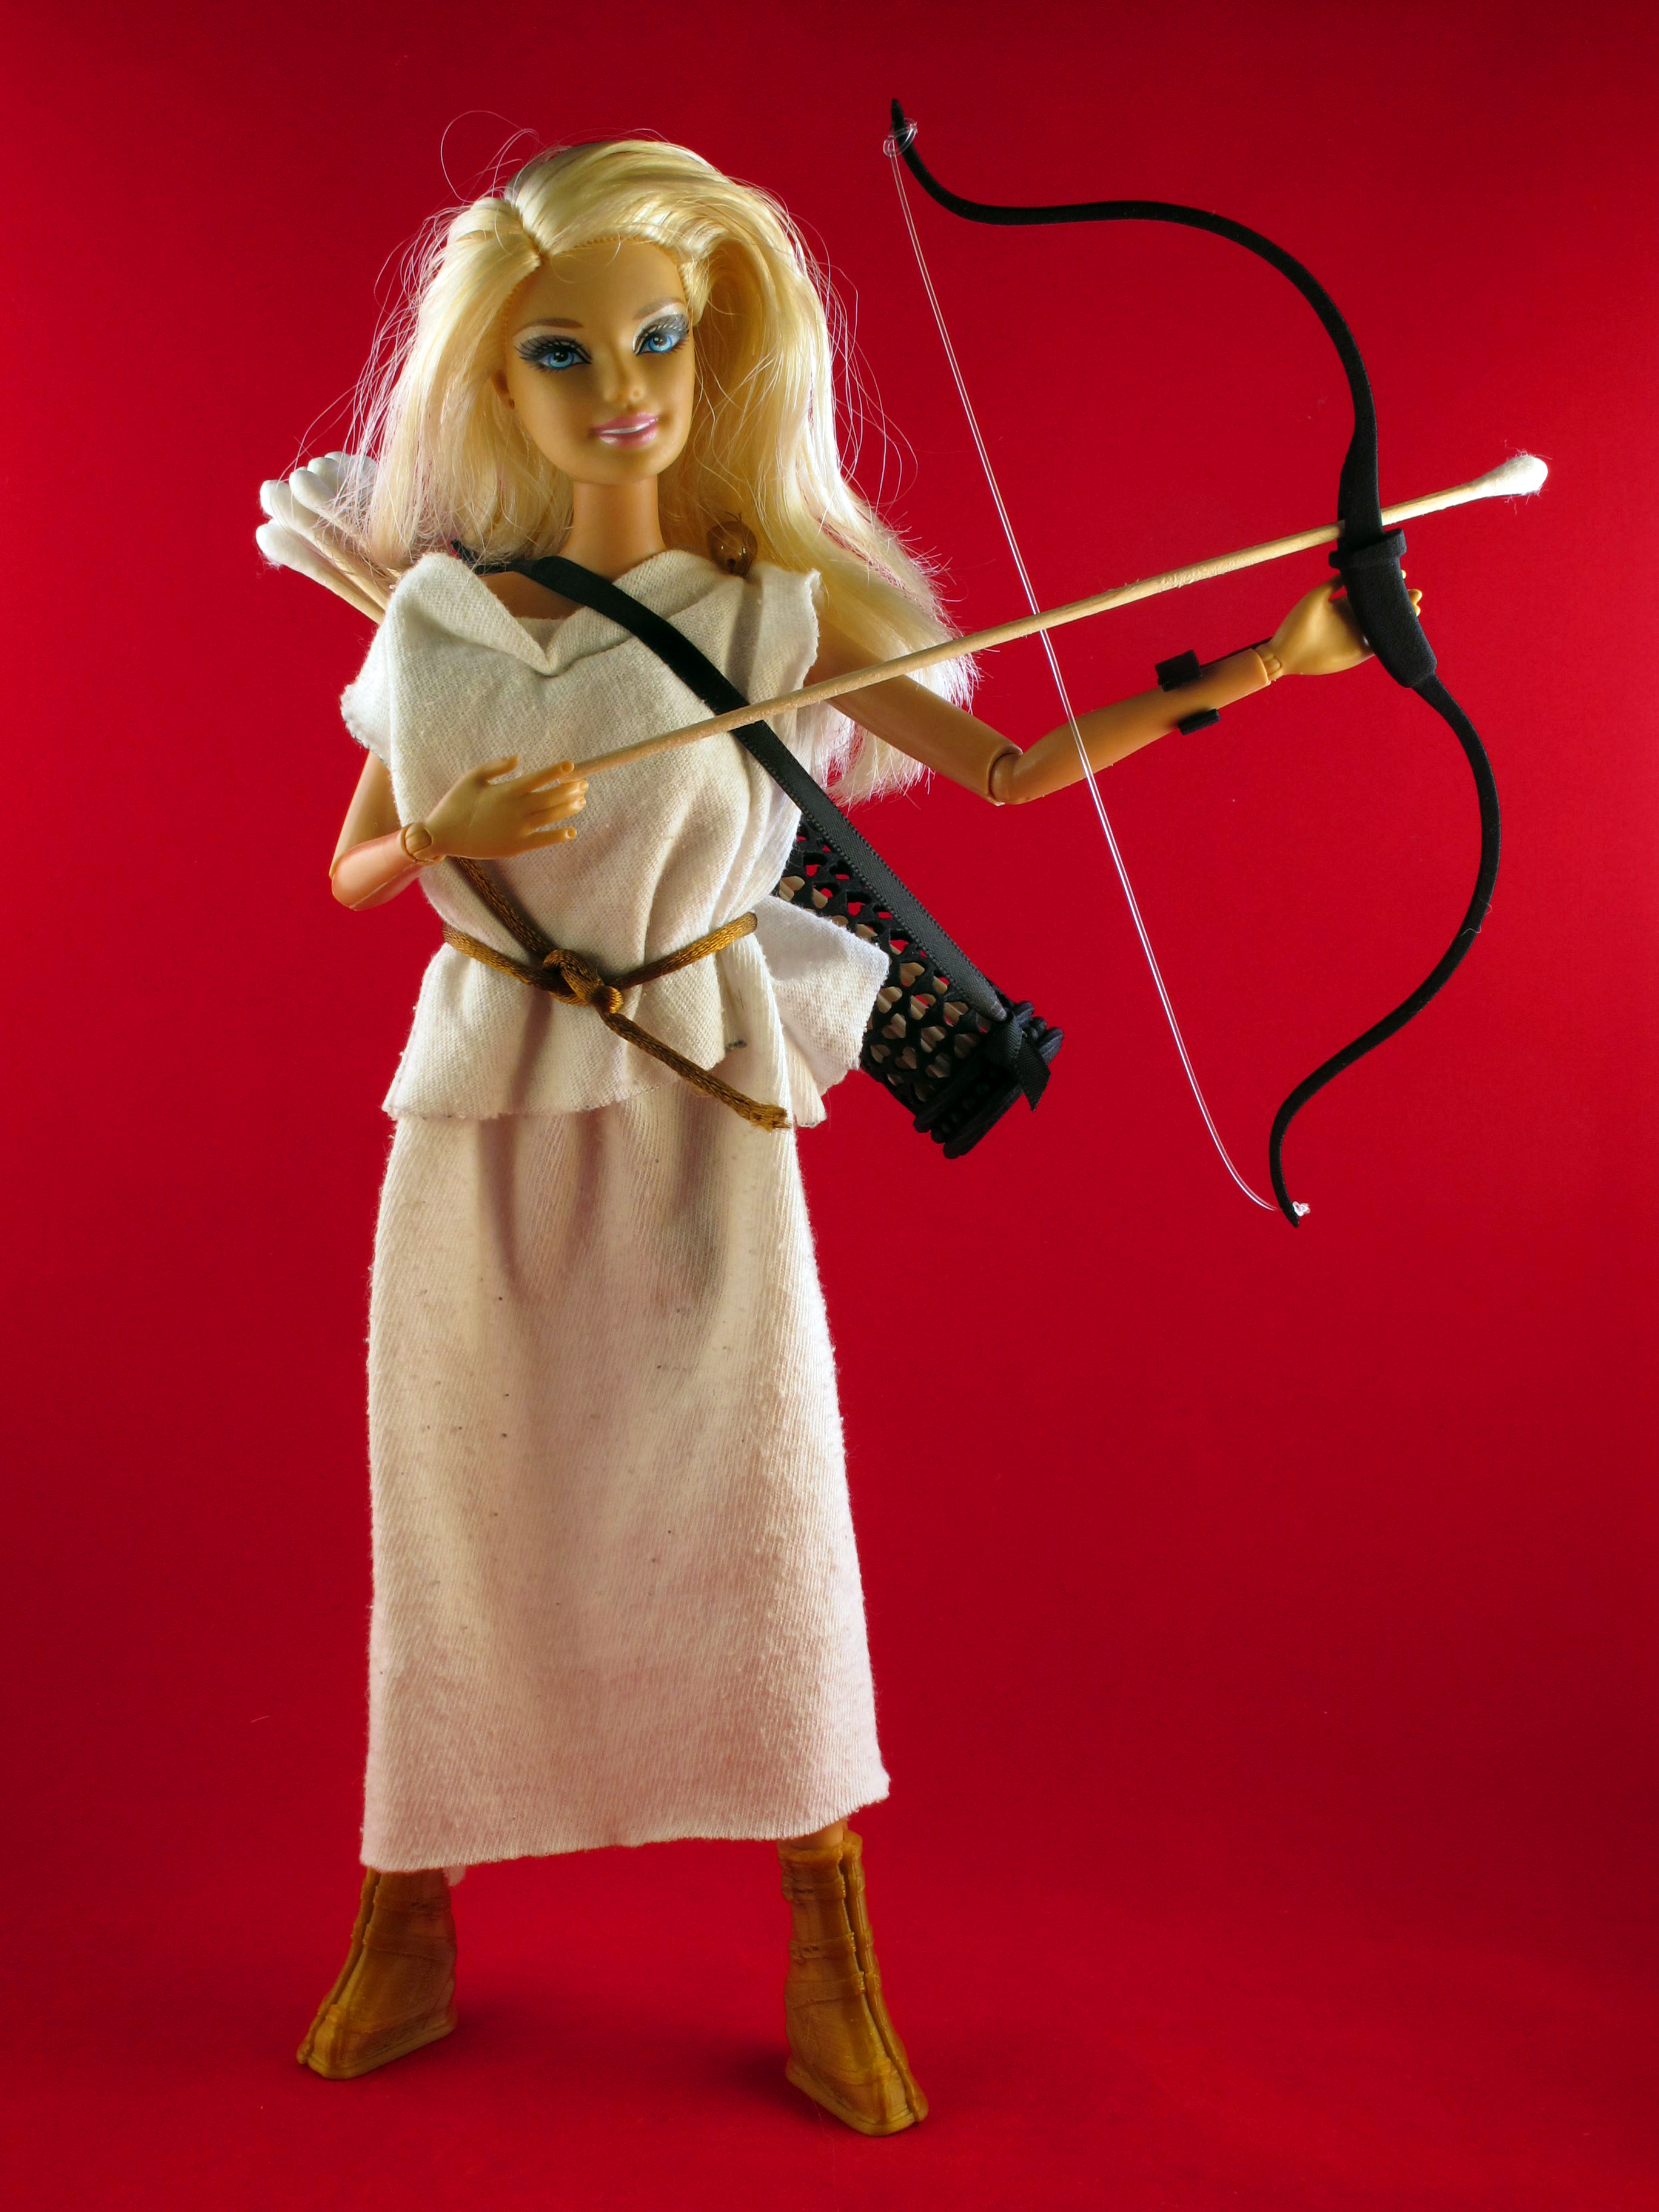 Barbie holds a bow and arrow in her medieval robe.